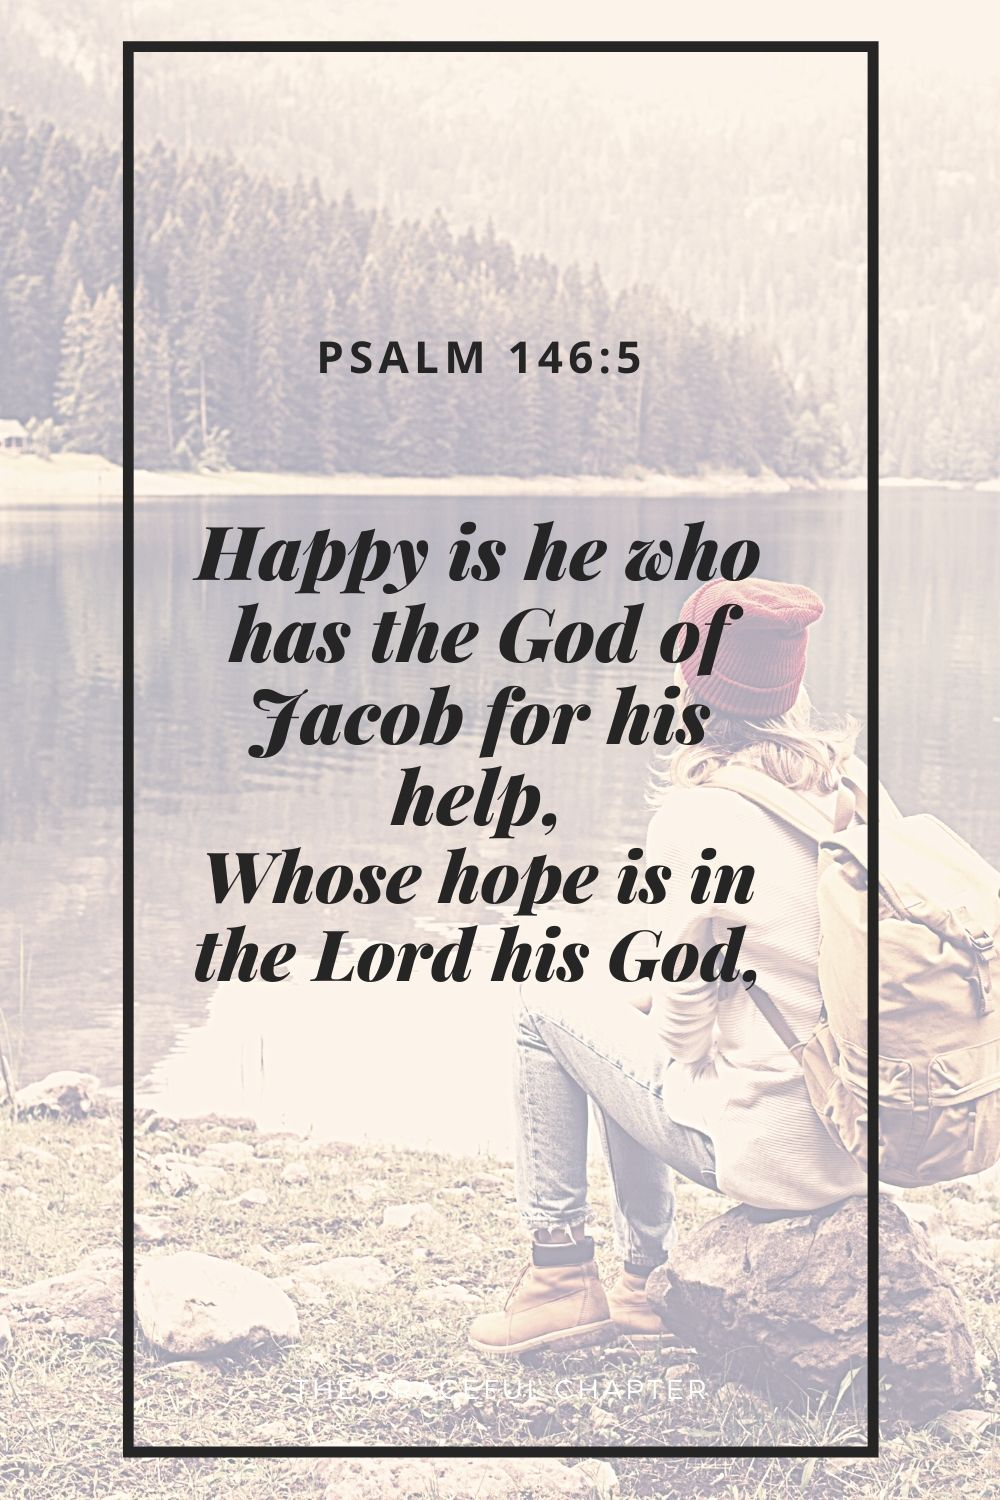 Happy is he who has the God of Jacob for his help, Whose hope is in the Lord his GodHappy is he who has the God of Jacob for his help, Whose hope is in the Lord his God, Psalm 146:5